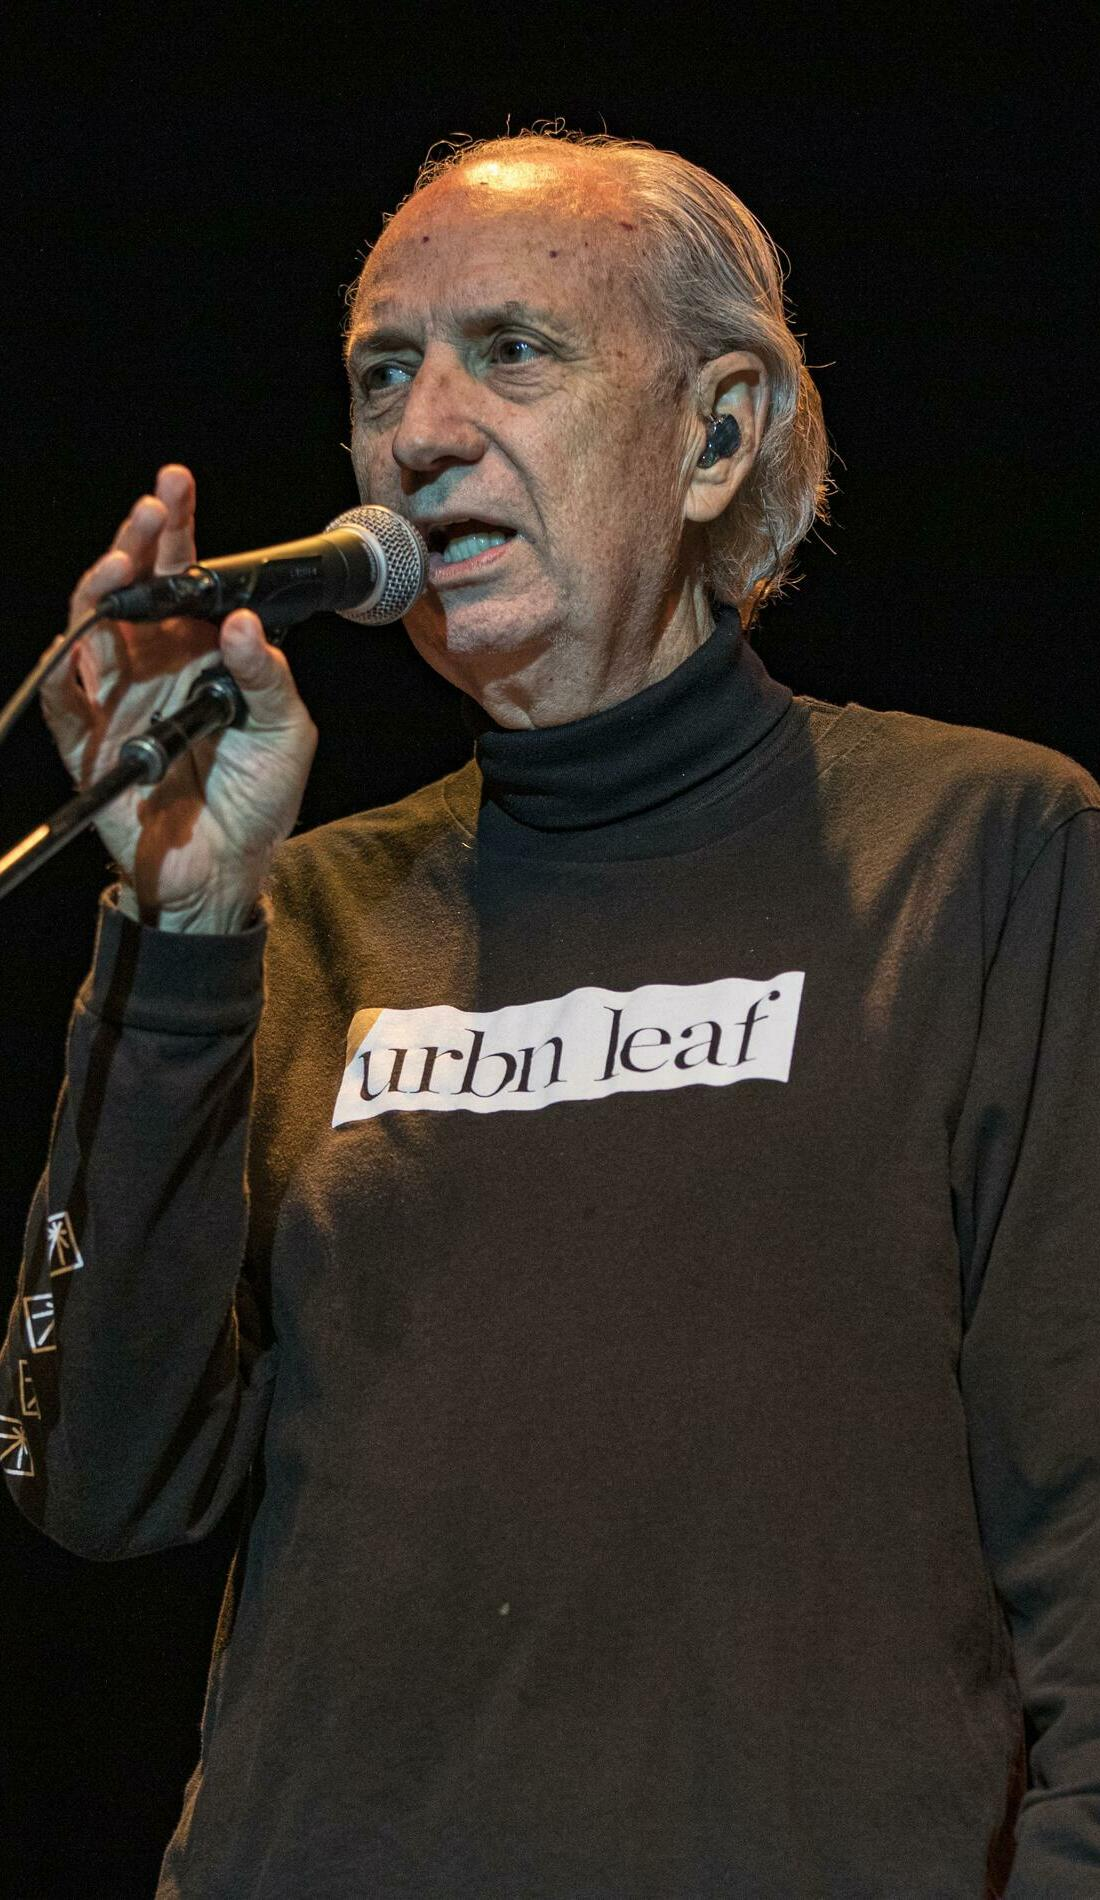 A Michael Nesmith live event